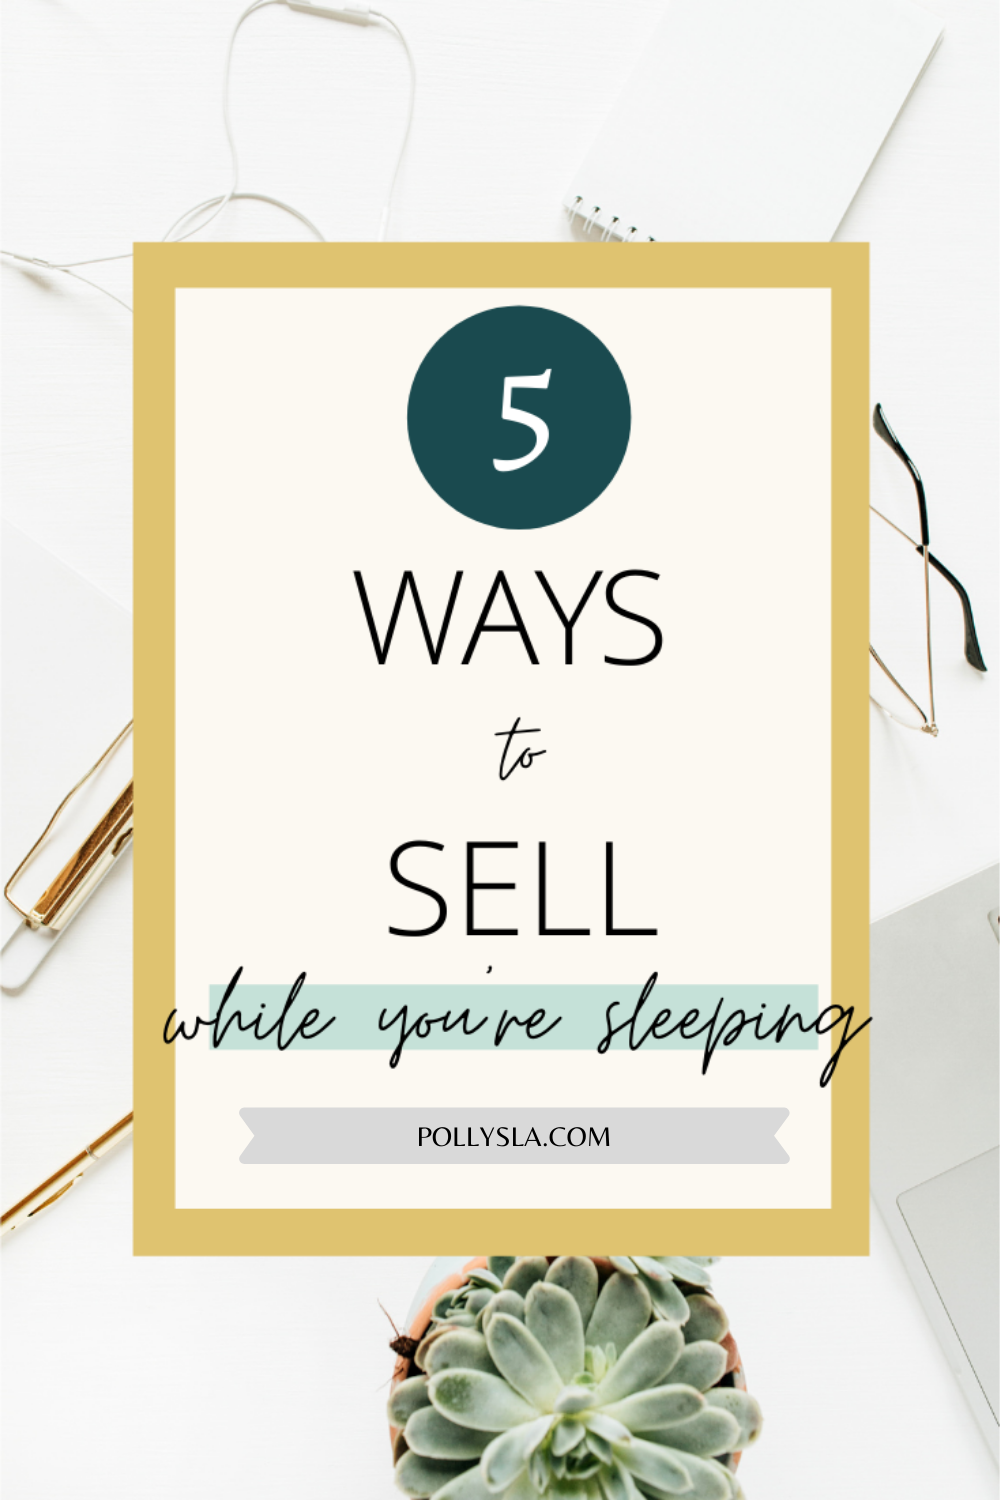 5 Ways to Sell While You're Sleeping